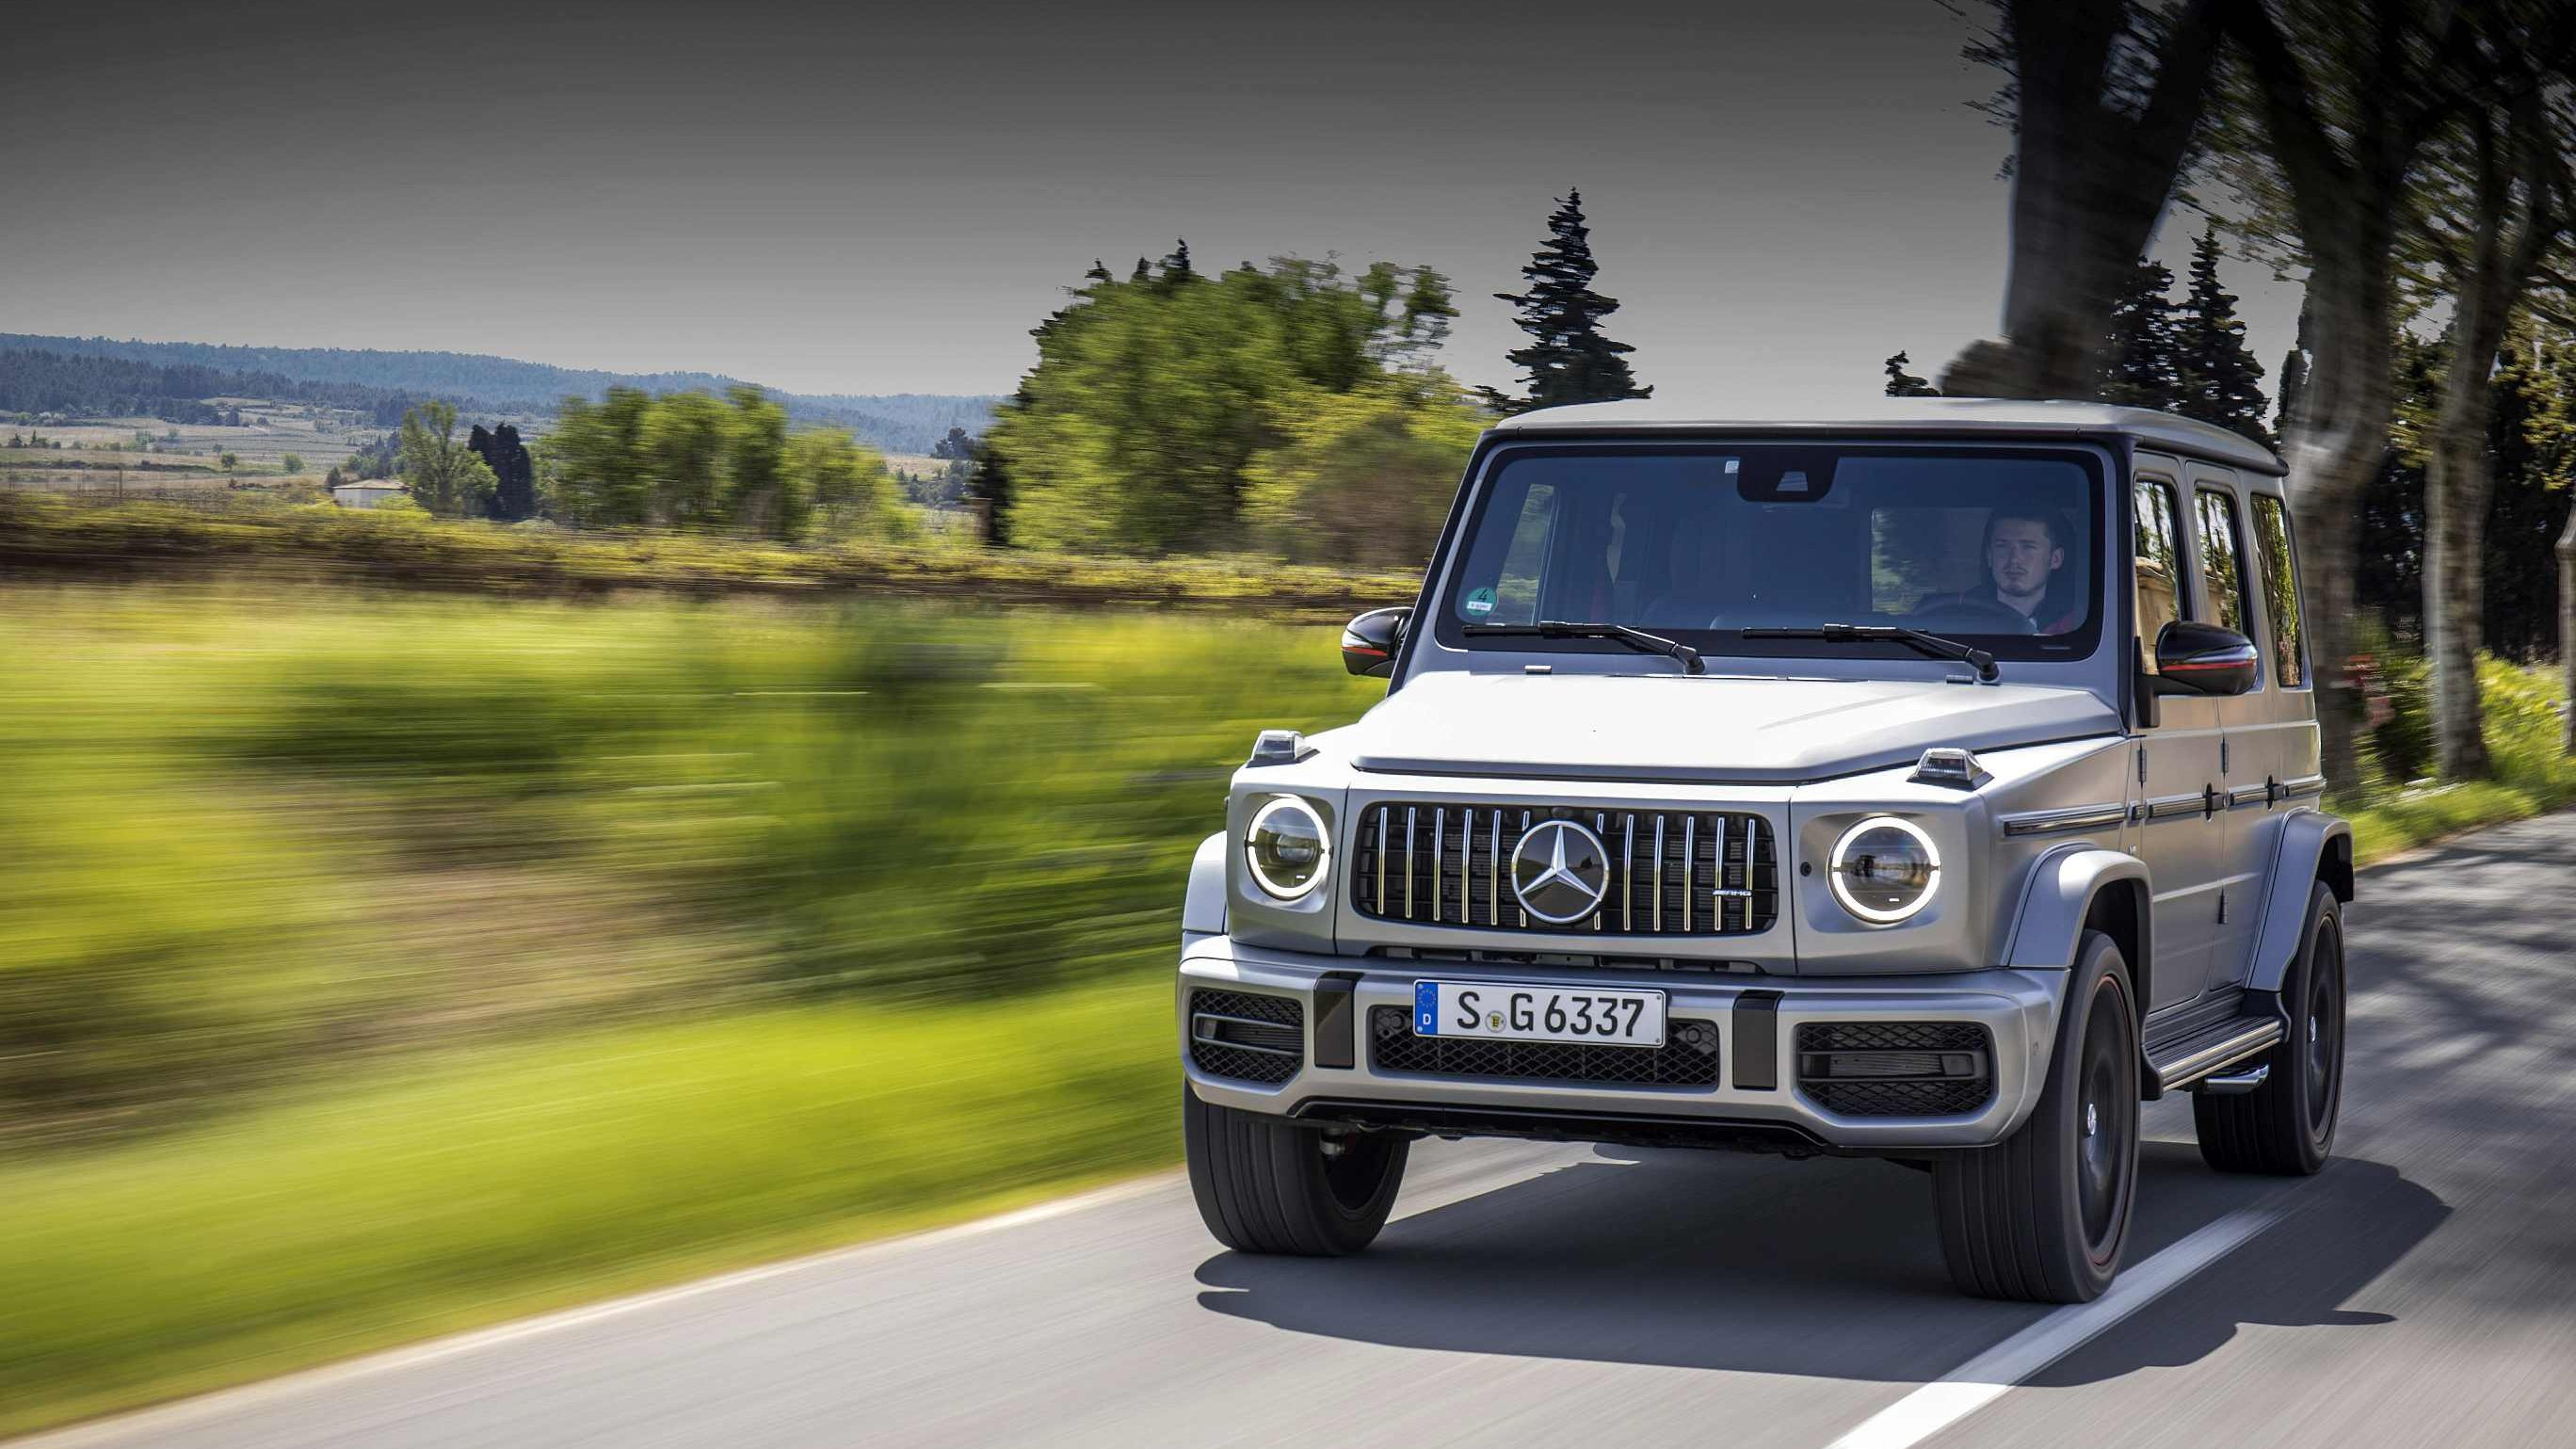 Image for Vozili smo Mercedes G-klase